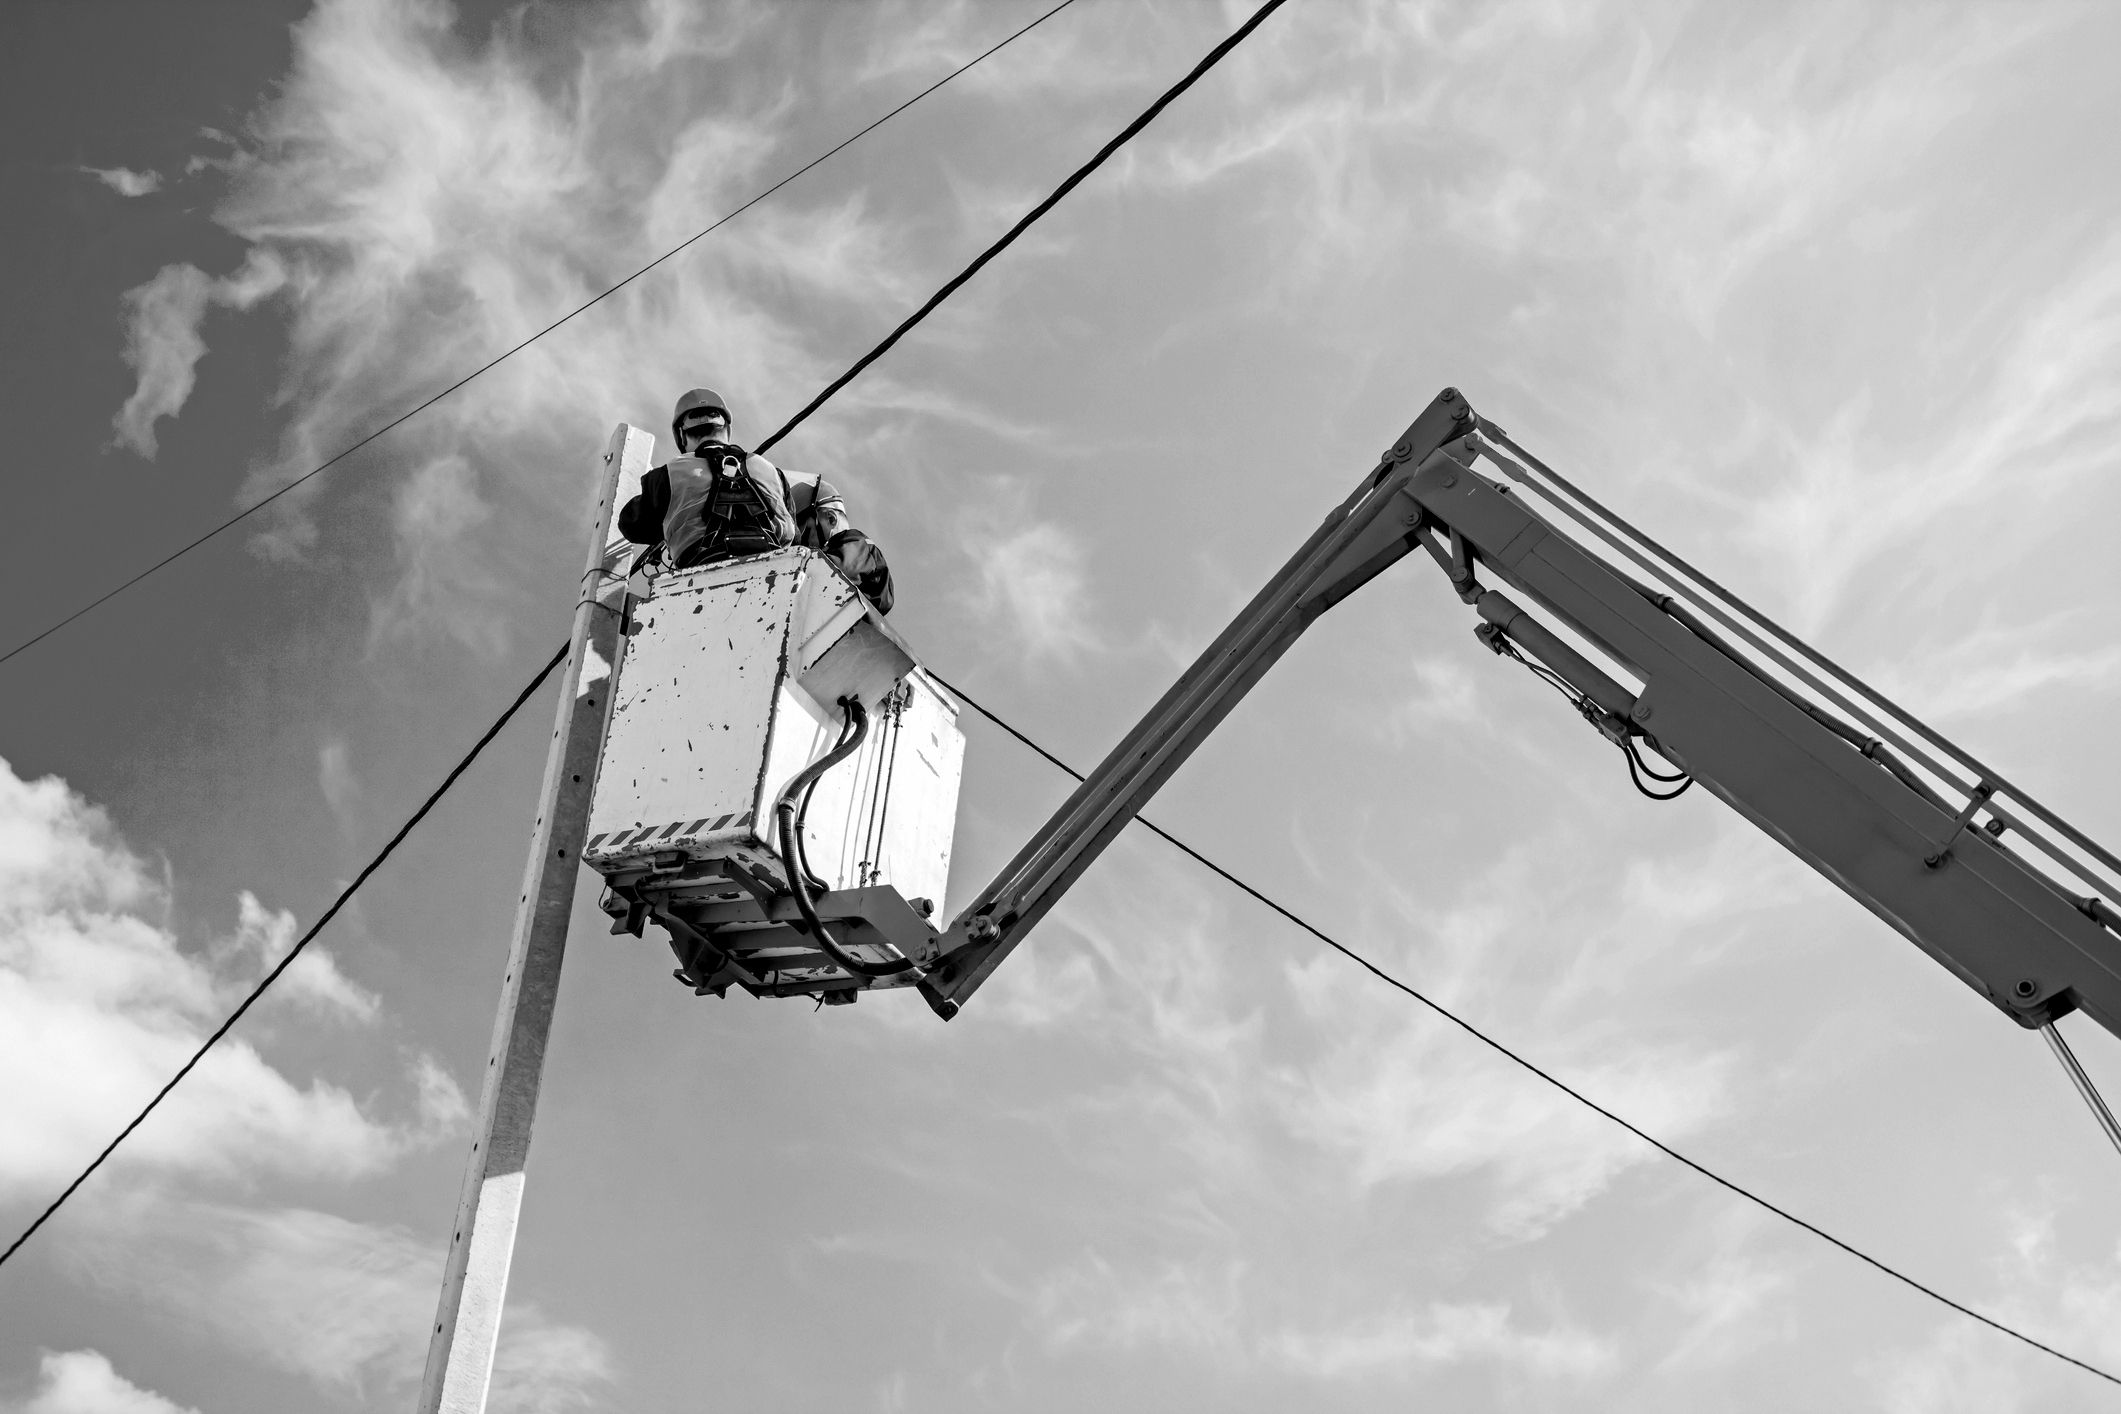 Working on powerlines in a cherry picker